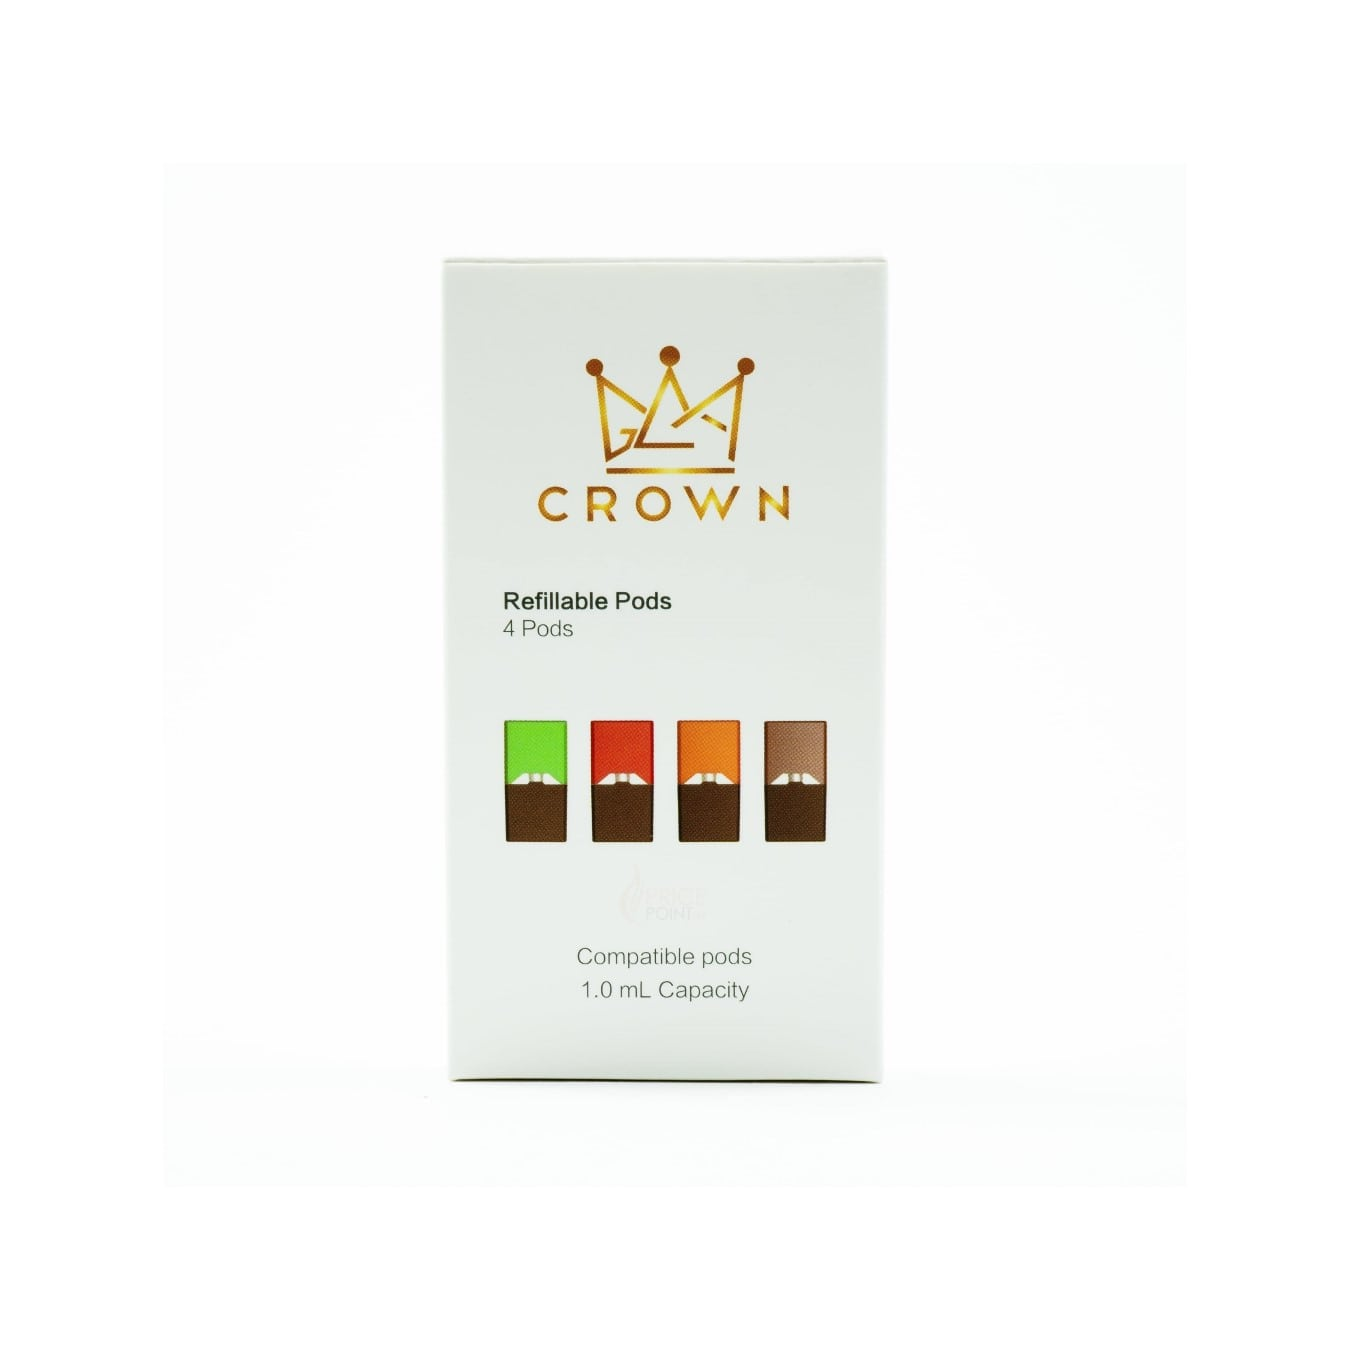 CROWN Refilalble Pods | Refillable JUULpods | JUUL Compatible | JUUL Compatible Pods | Price Point NY | Salt Nic Pod